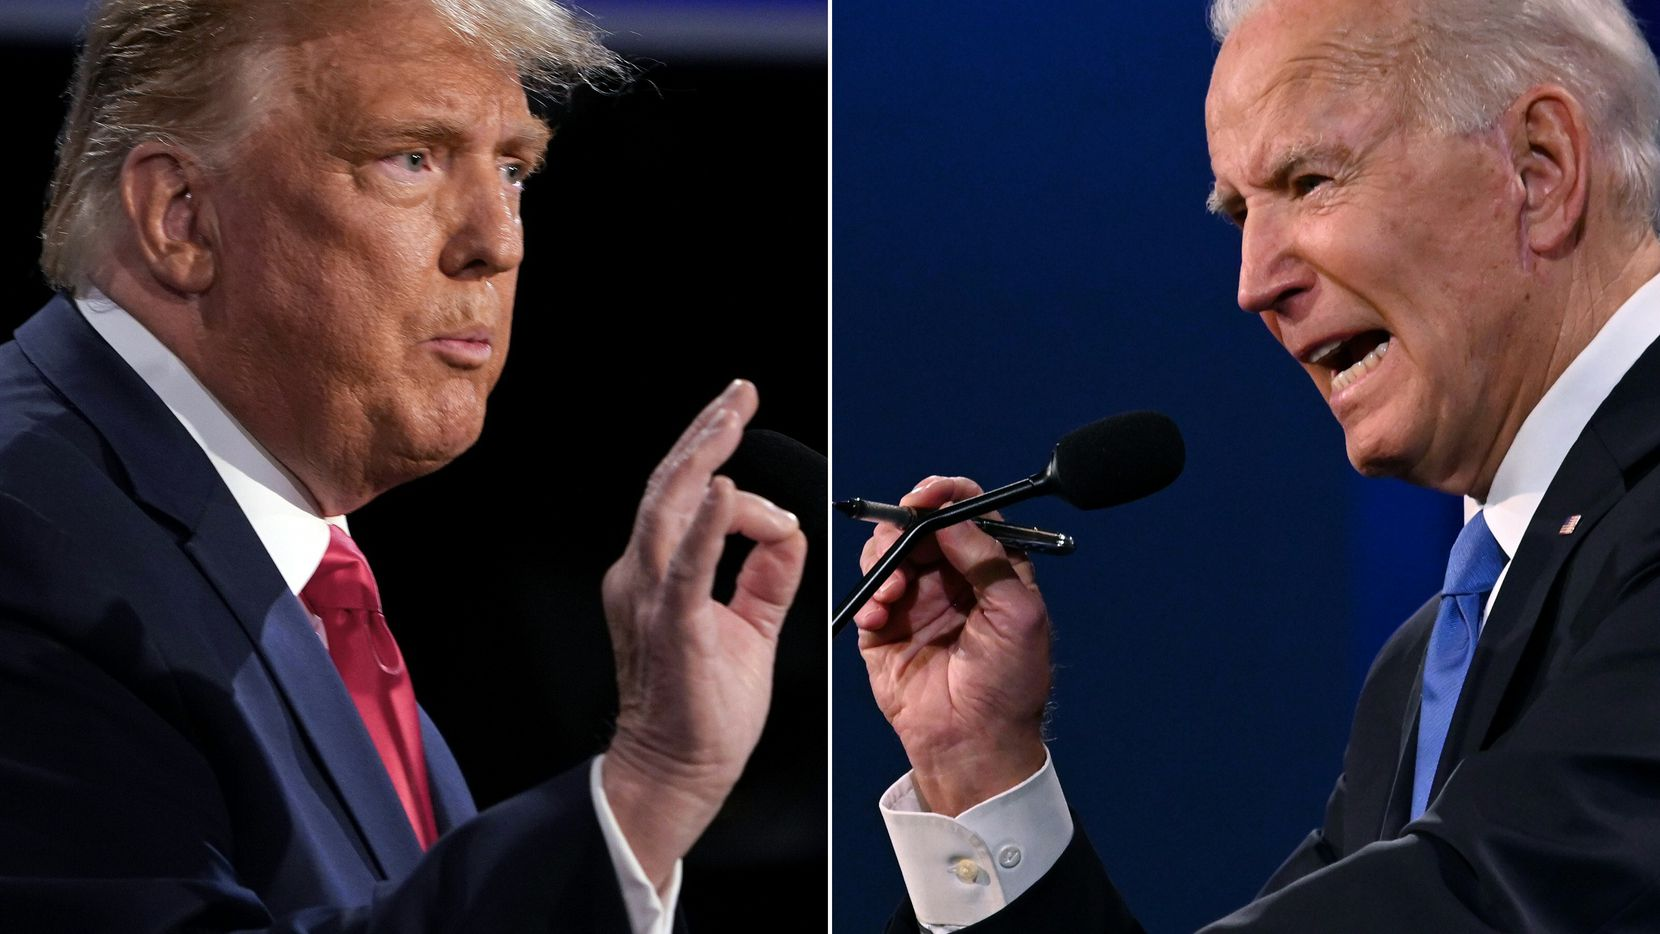 Former Vice President Joe Biden (right) has regained a narrow lead over President Donald Trump in Texas, after wooing more independents and Hispanics, according to a new poll by The Dallas Morning News and University of Texas at Tyler. Biden's lead is 48-45, which is within the poll's margin of error.